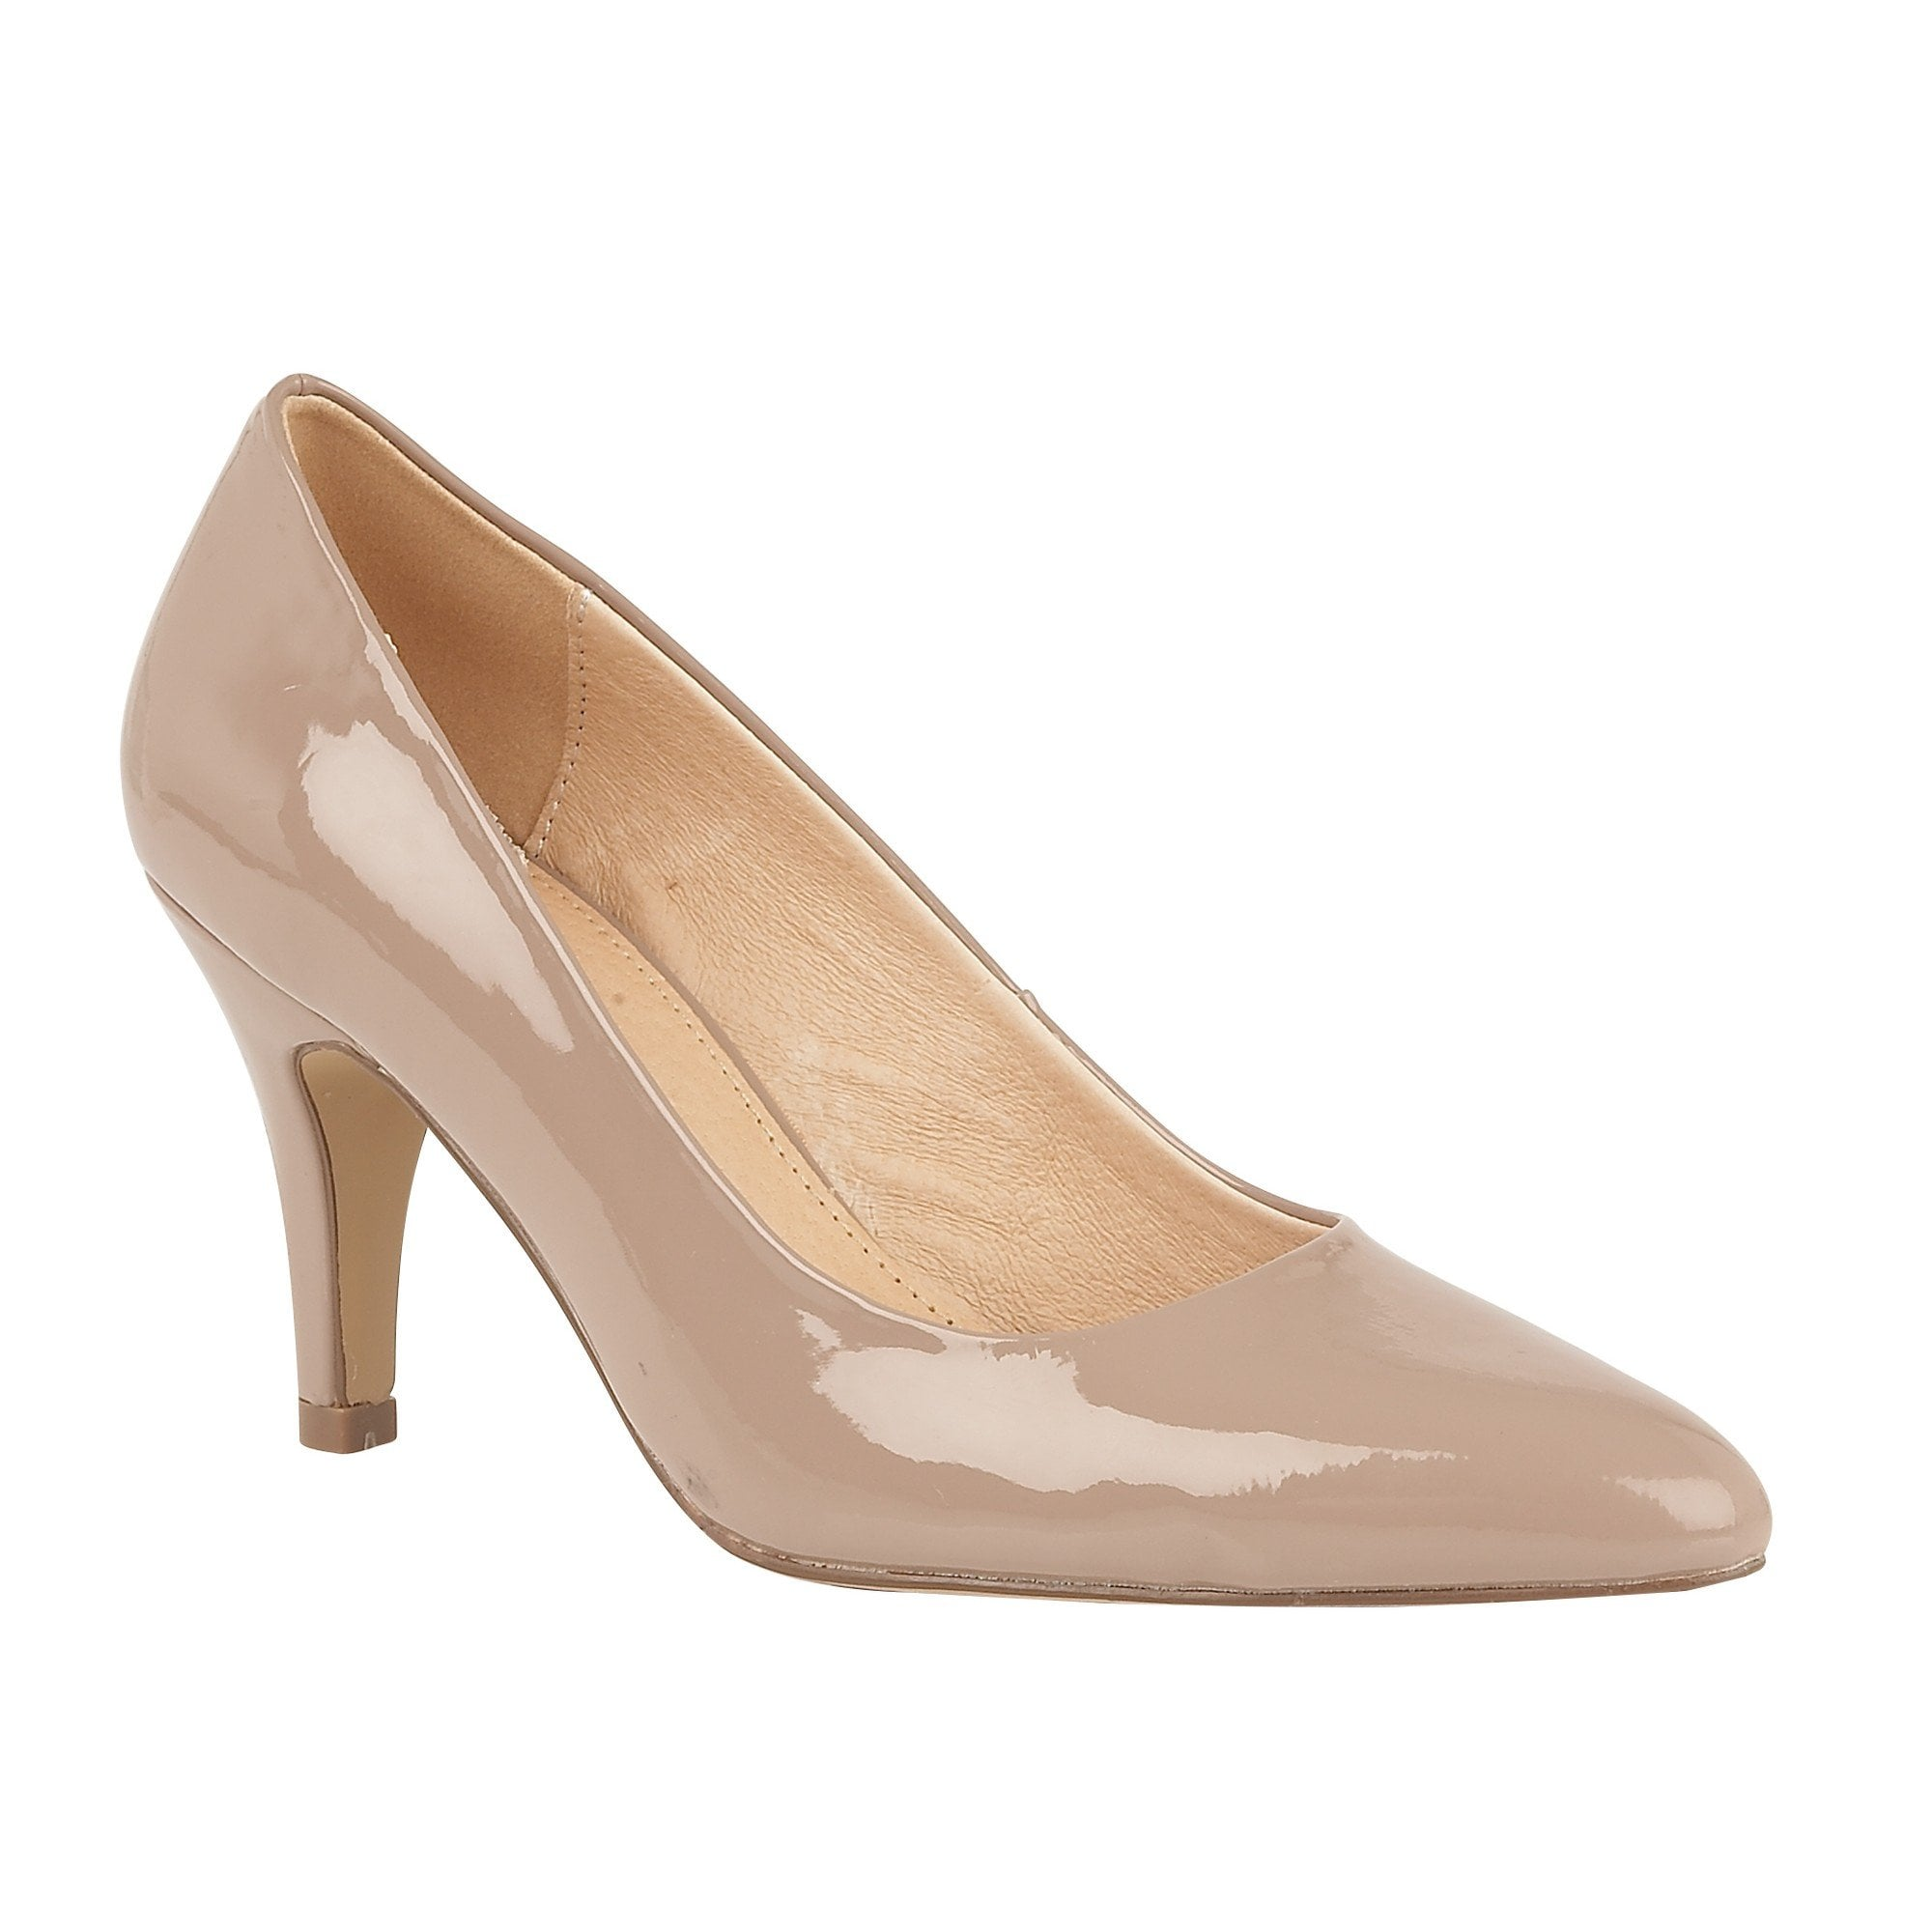 Lotus ladies' Holly court shoes